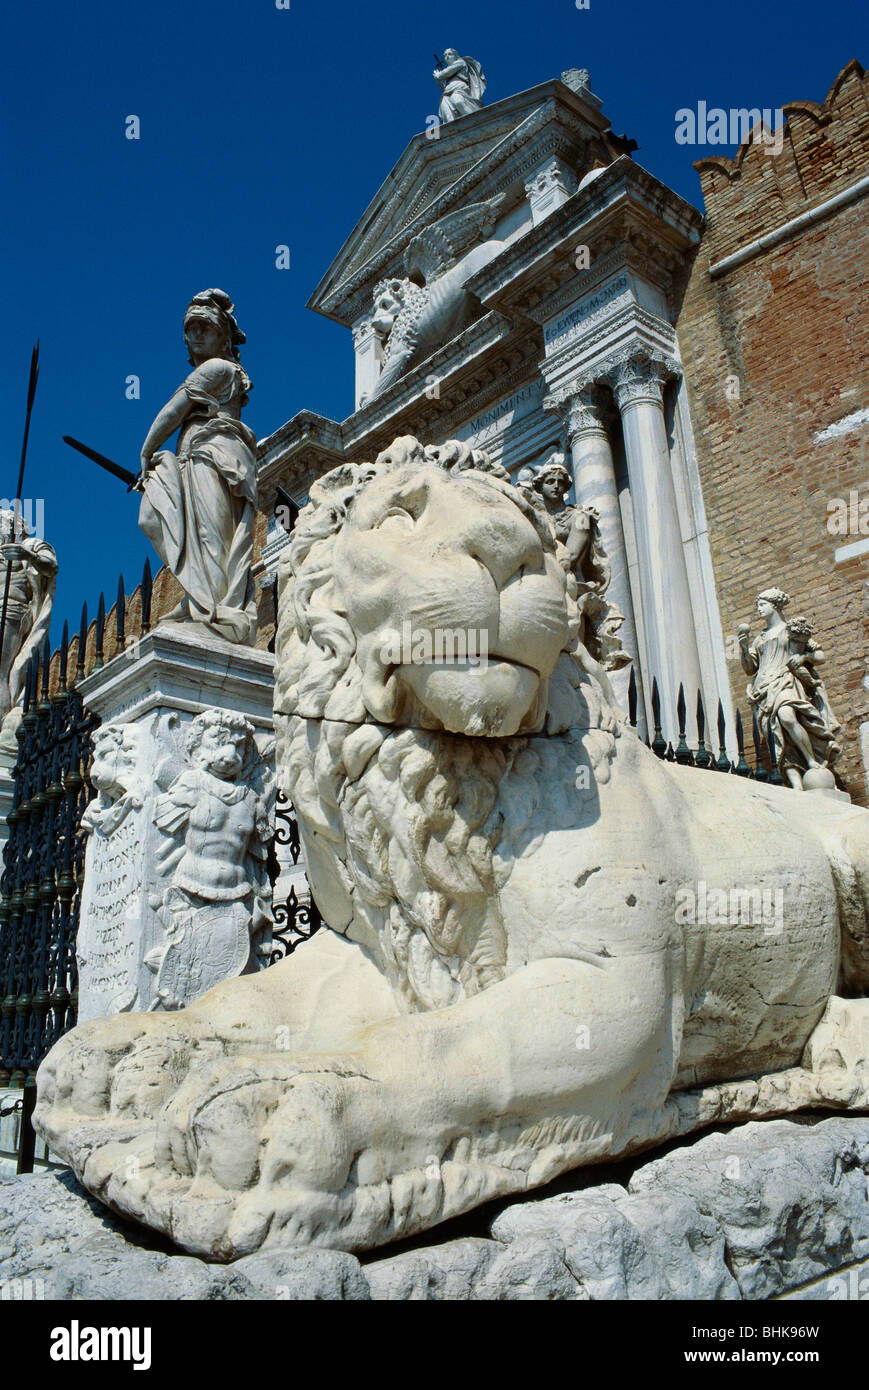 Venice. Italy. Lion statue stands on guard outside the gate of the Arsenale, the old shipbuilding yard. - Stock Image